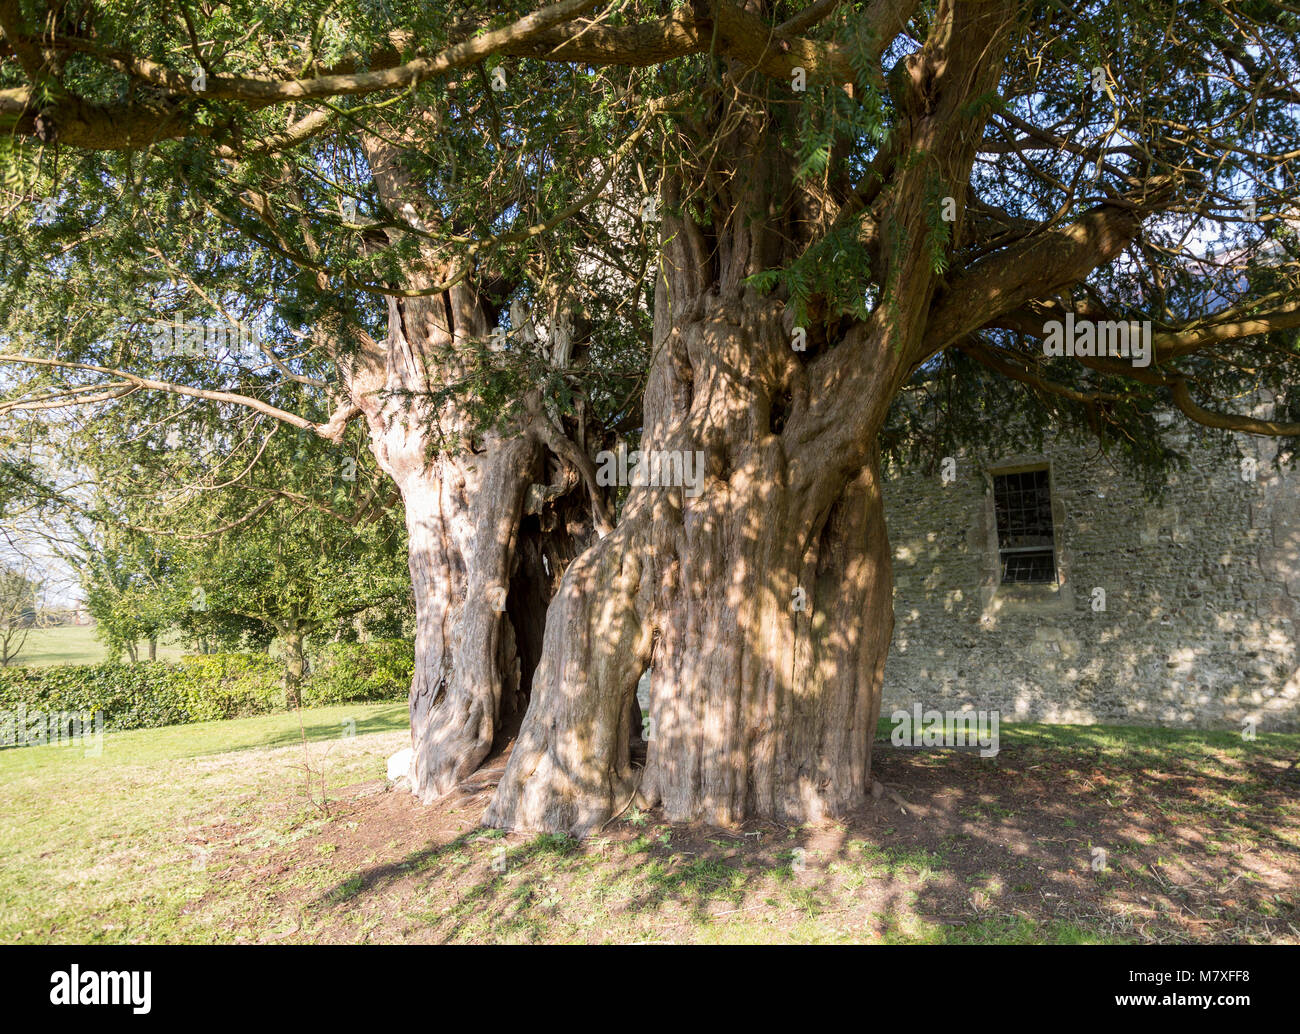 Ancient yew tree dated at 1700 years old All Saints Church, Alton Priors, Wiltshire, England, UK - Stock Image